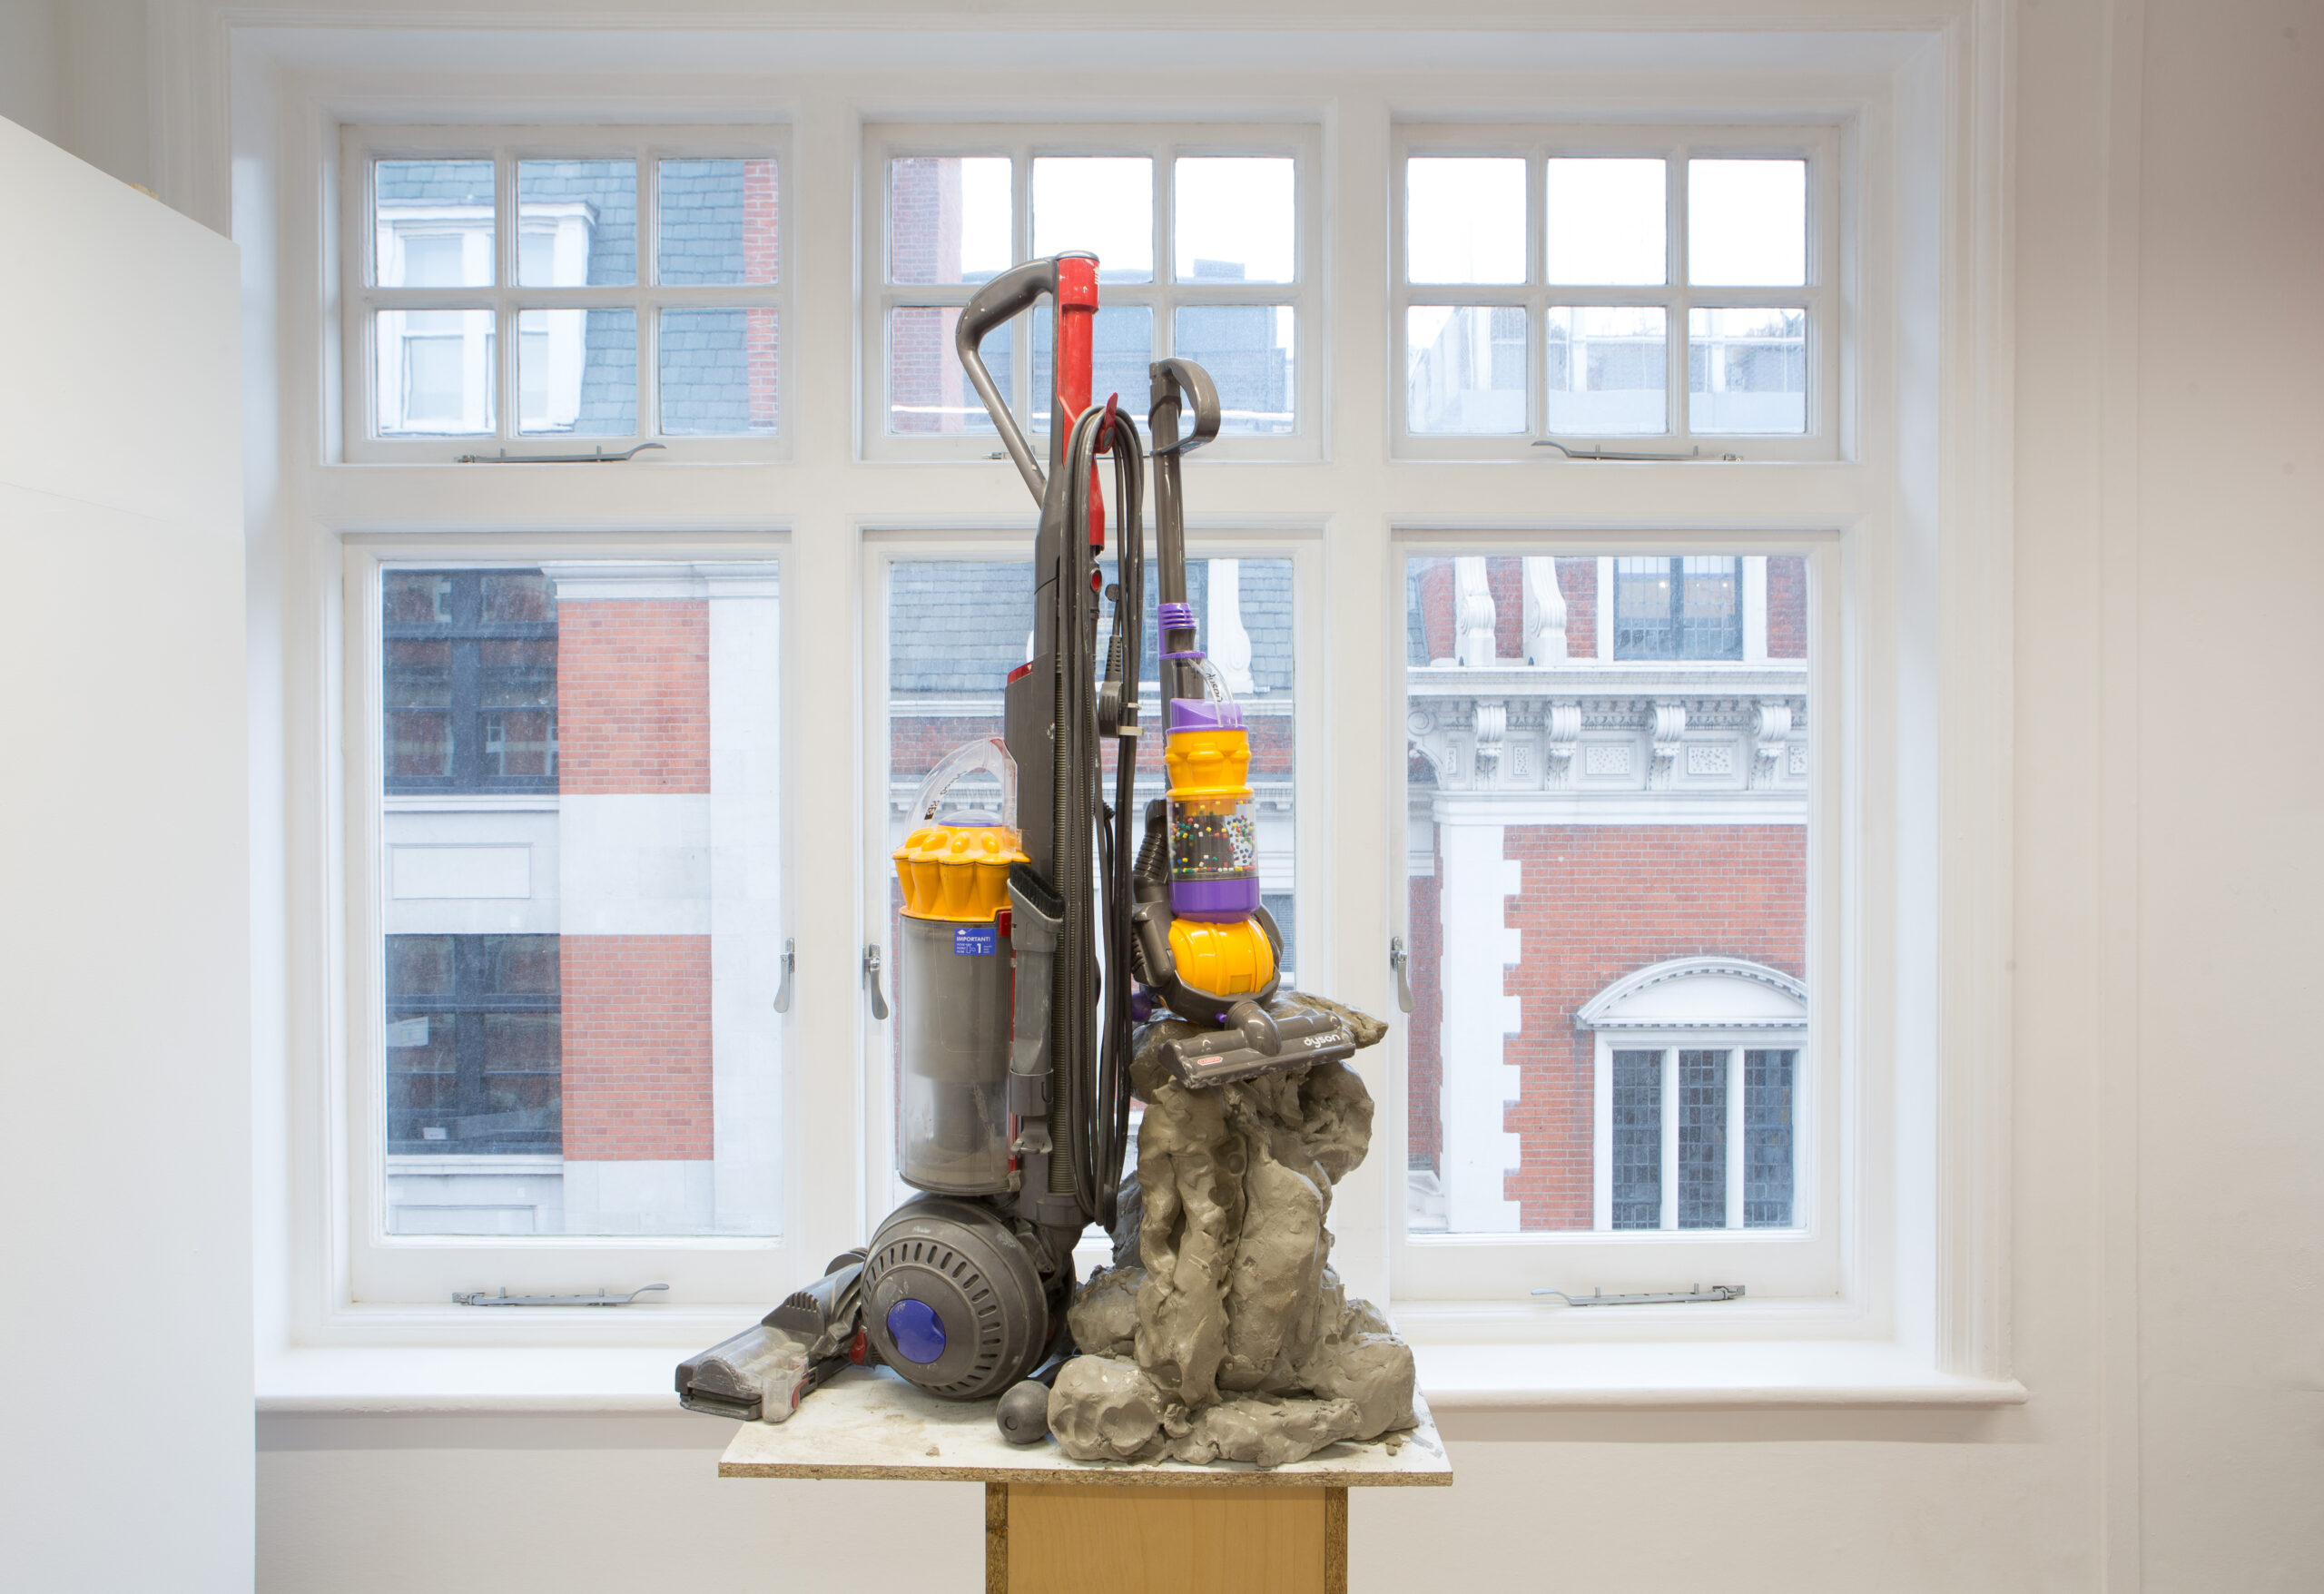 Harley Kuyck-Cohen Art Deco (2021) Dyson Hoover, toy hoover and Clay, 93 cm x 70 cm x 70 cm.